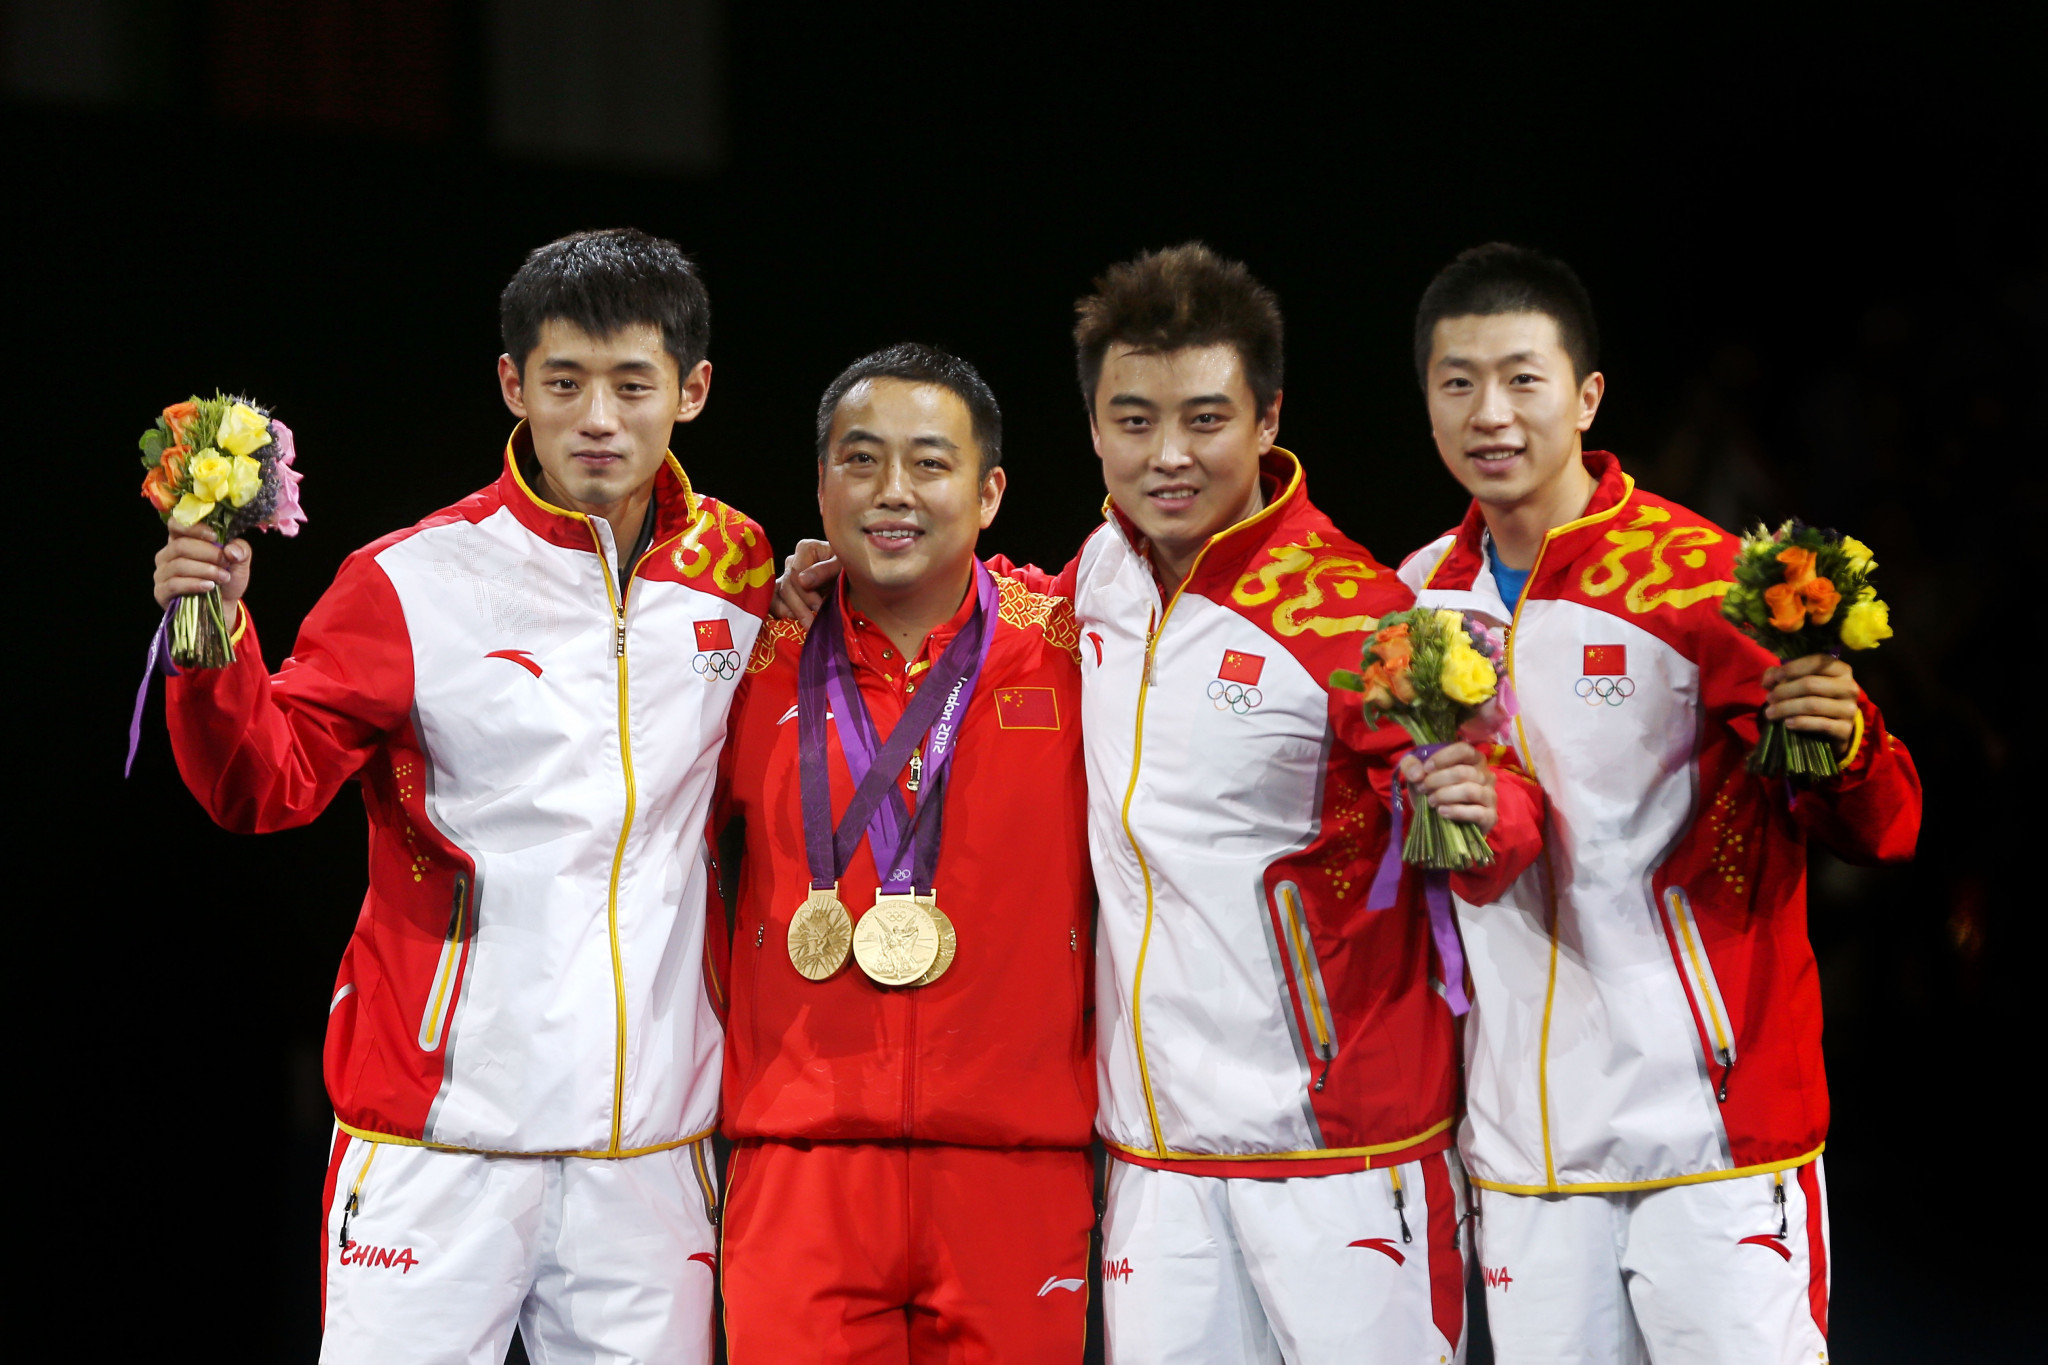 Liu Guoliang has helped China to success in the men's table tennis at recent Olympic Games ©Getty Images